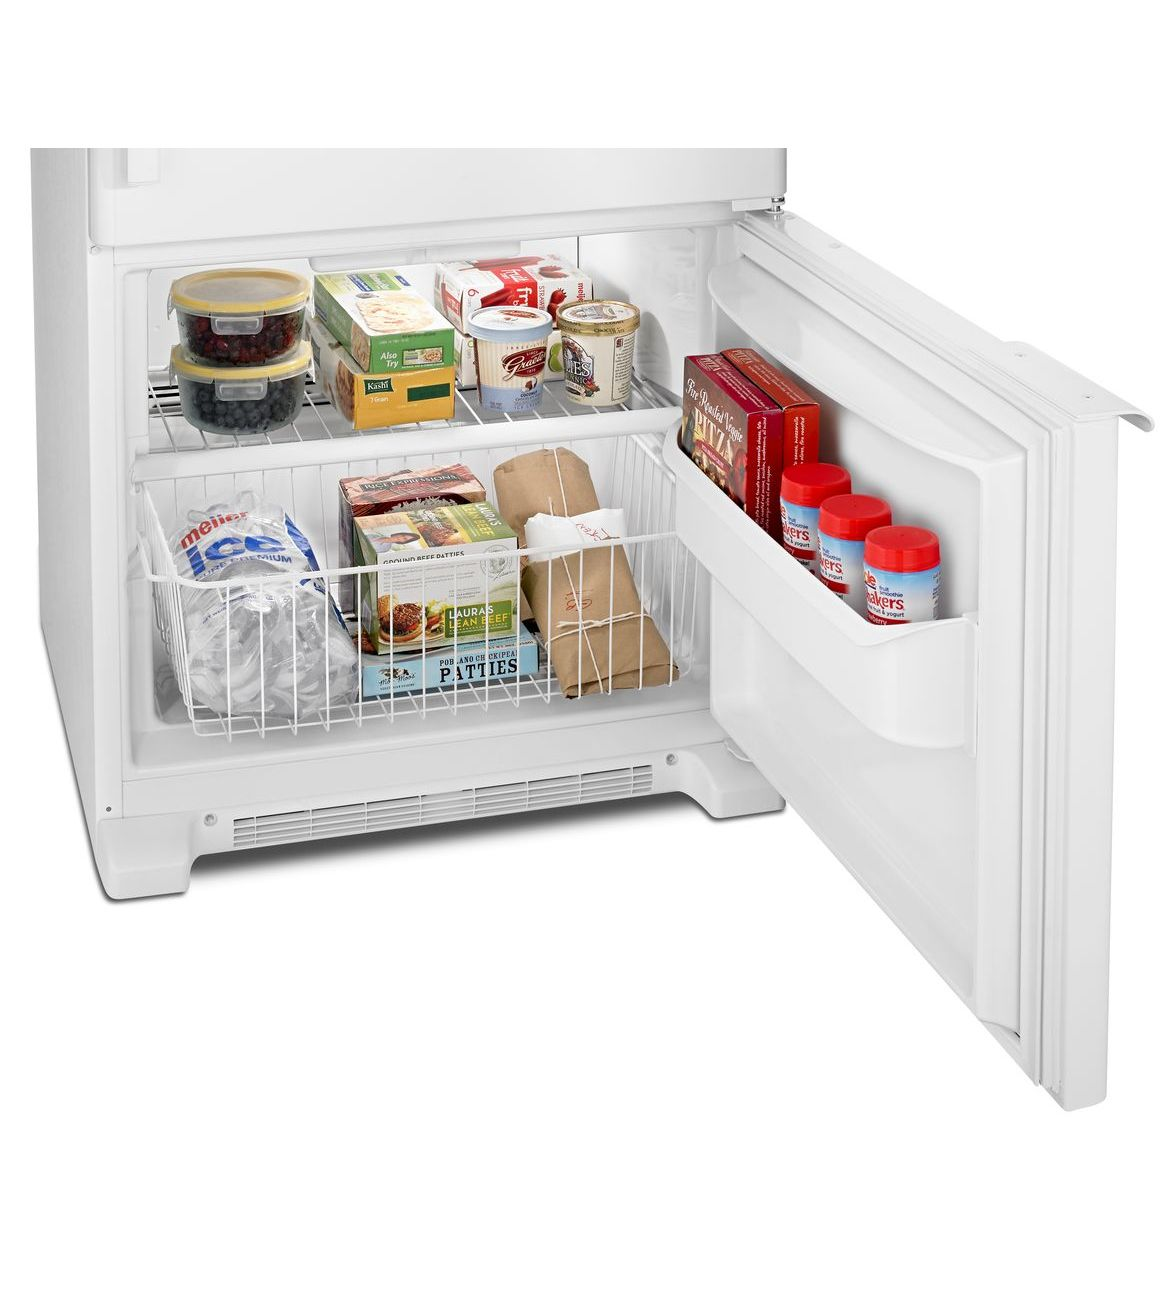 Abb1921brw Amana 18 5 Cu Ft Bottom Freezer